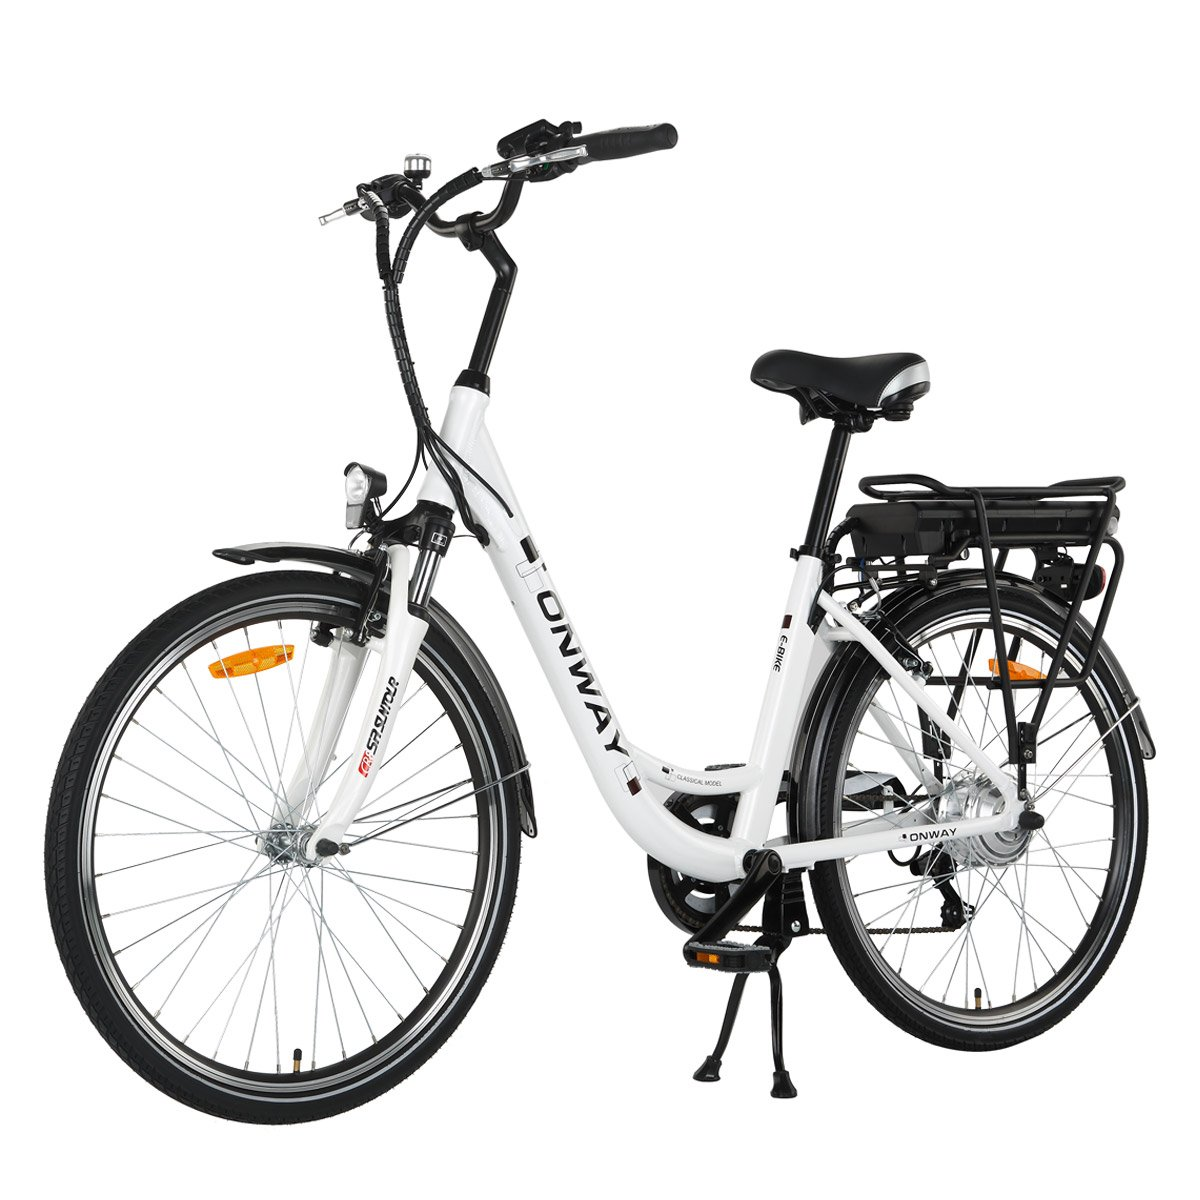 Top 20 Best Pedal Assist Electric Bicycles 2019 2020 On